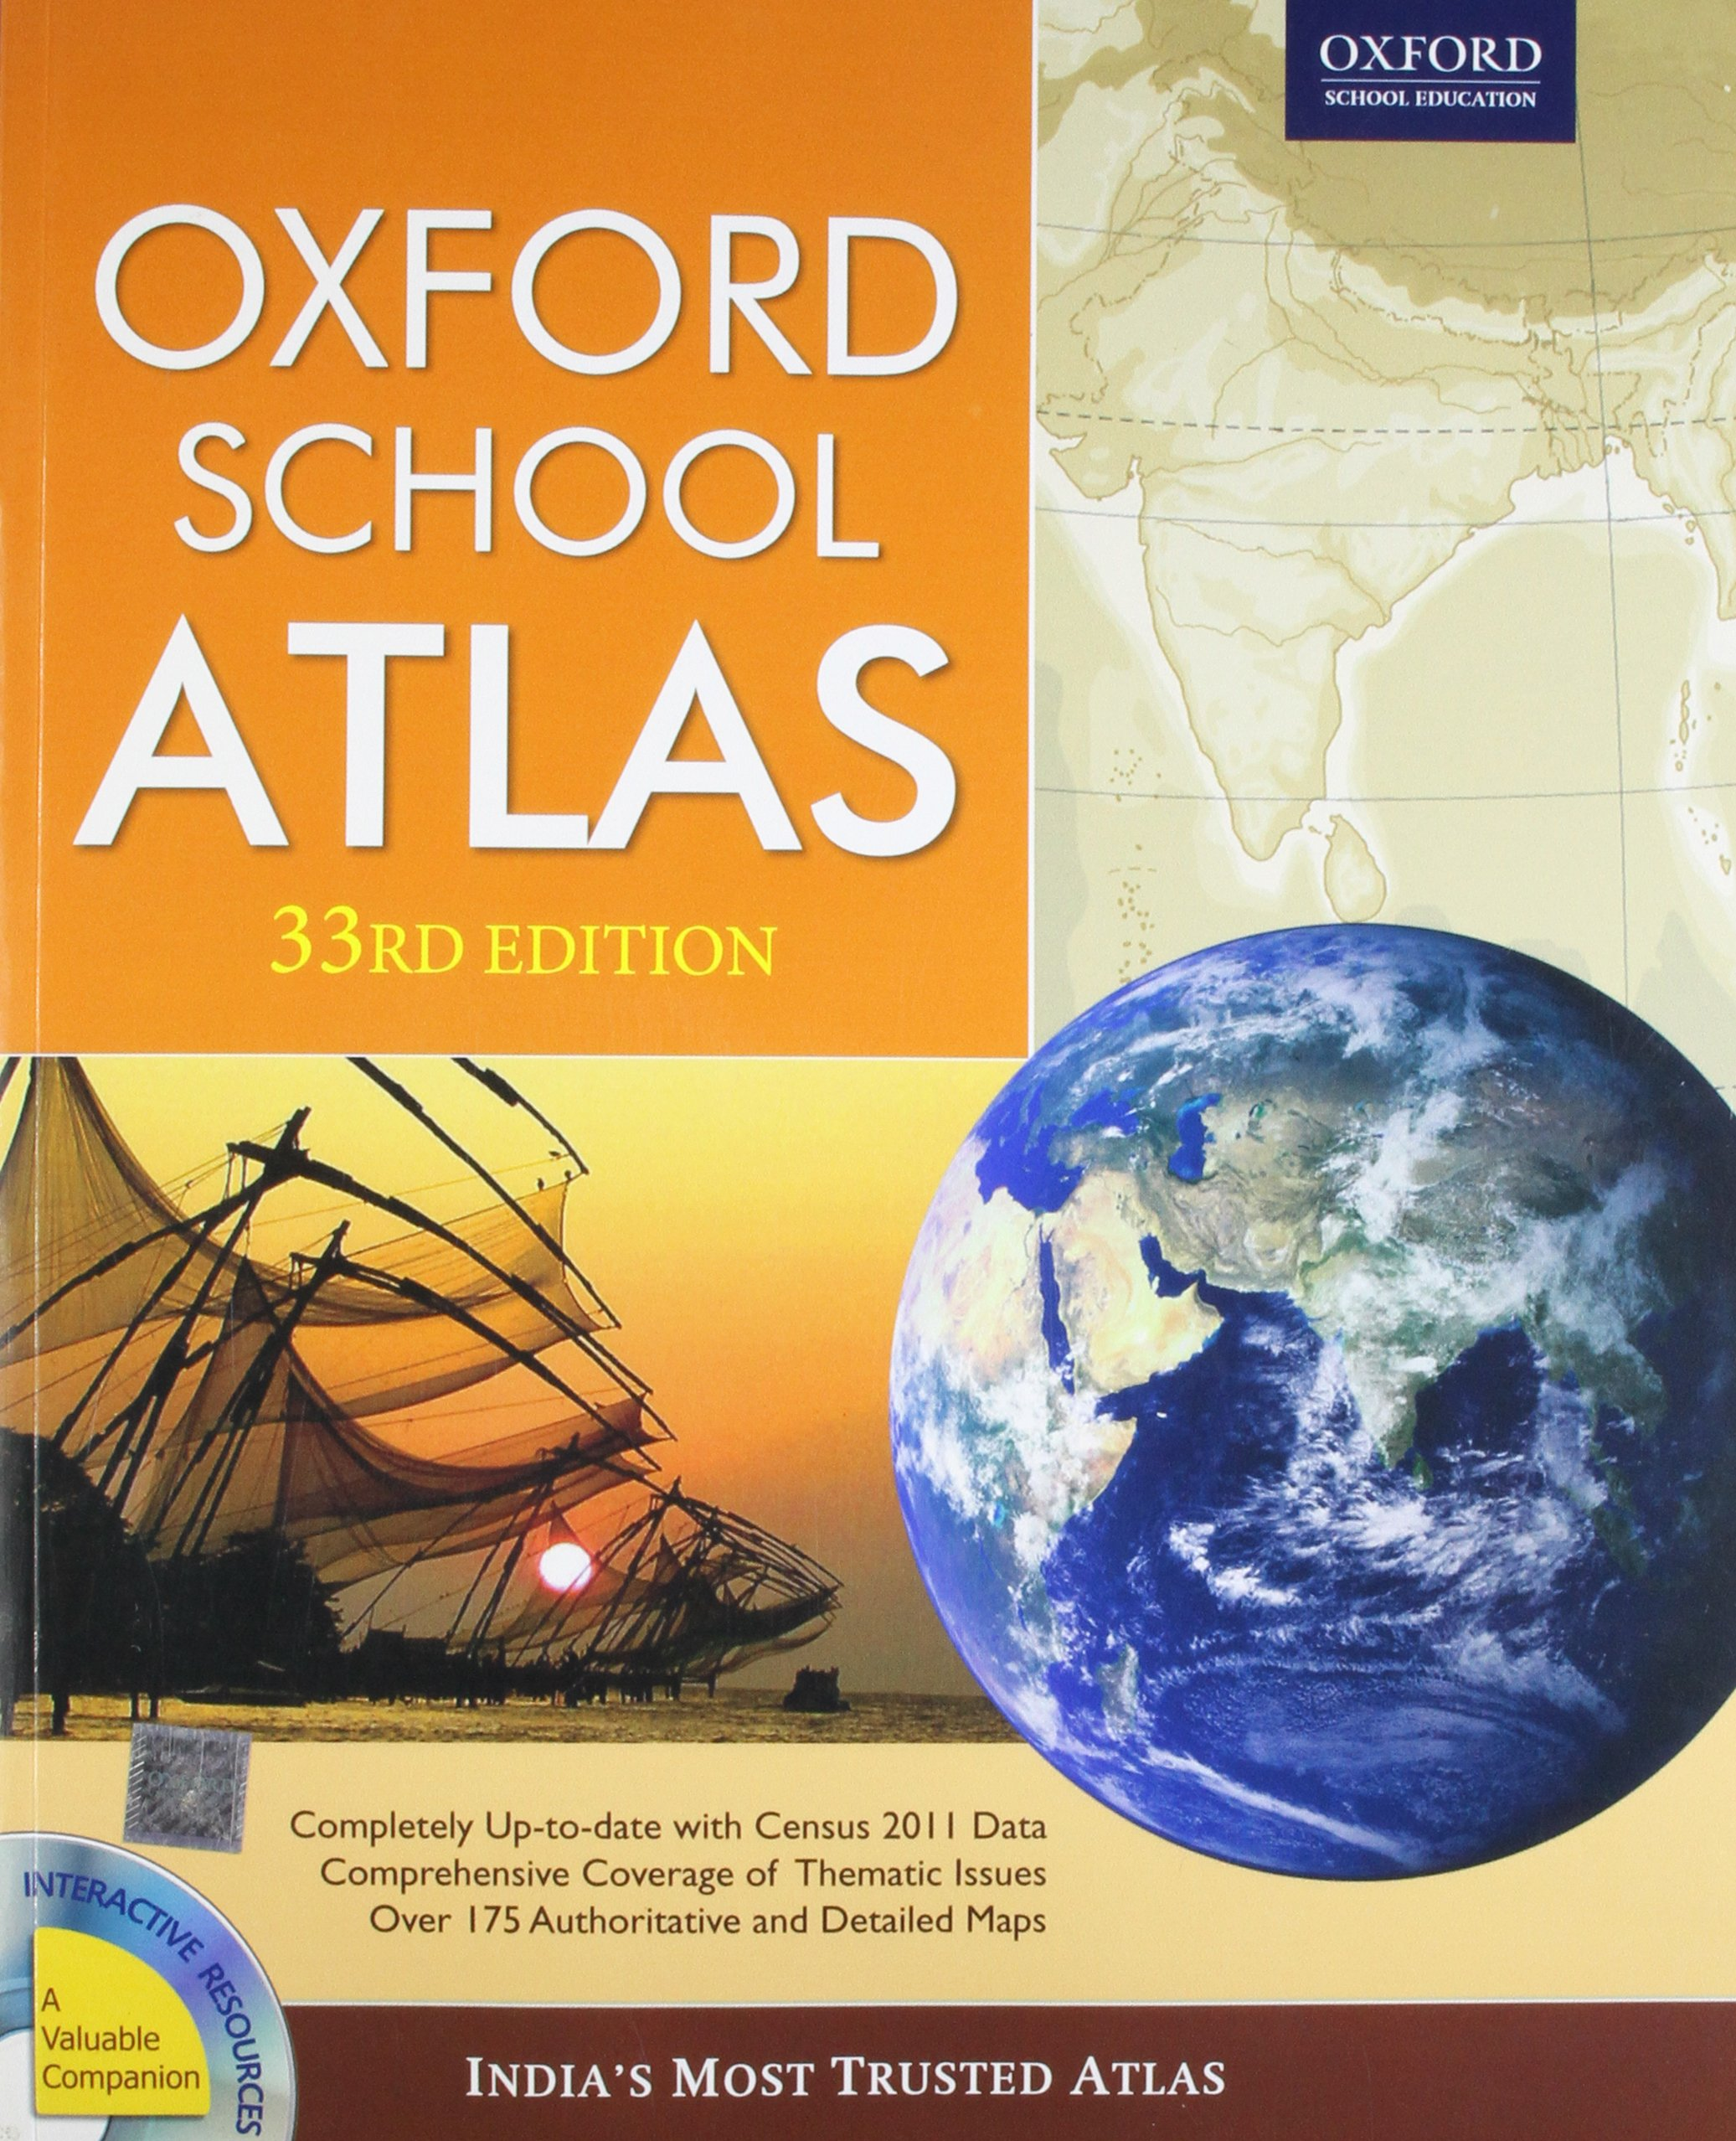 Oxford atlas 251mb a must have for all civil service aspirants oxford atlas 251mb a must have for all civil service aspirants gumiabroncs Choice Image